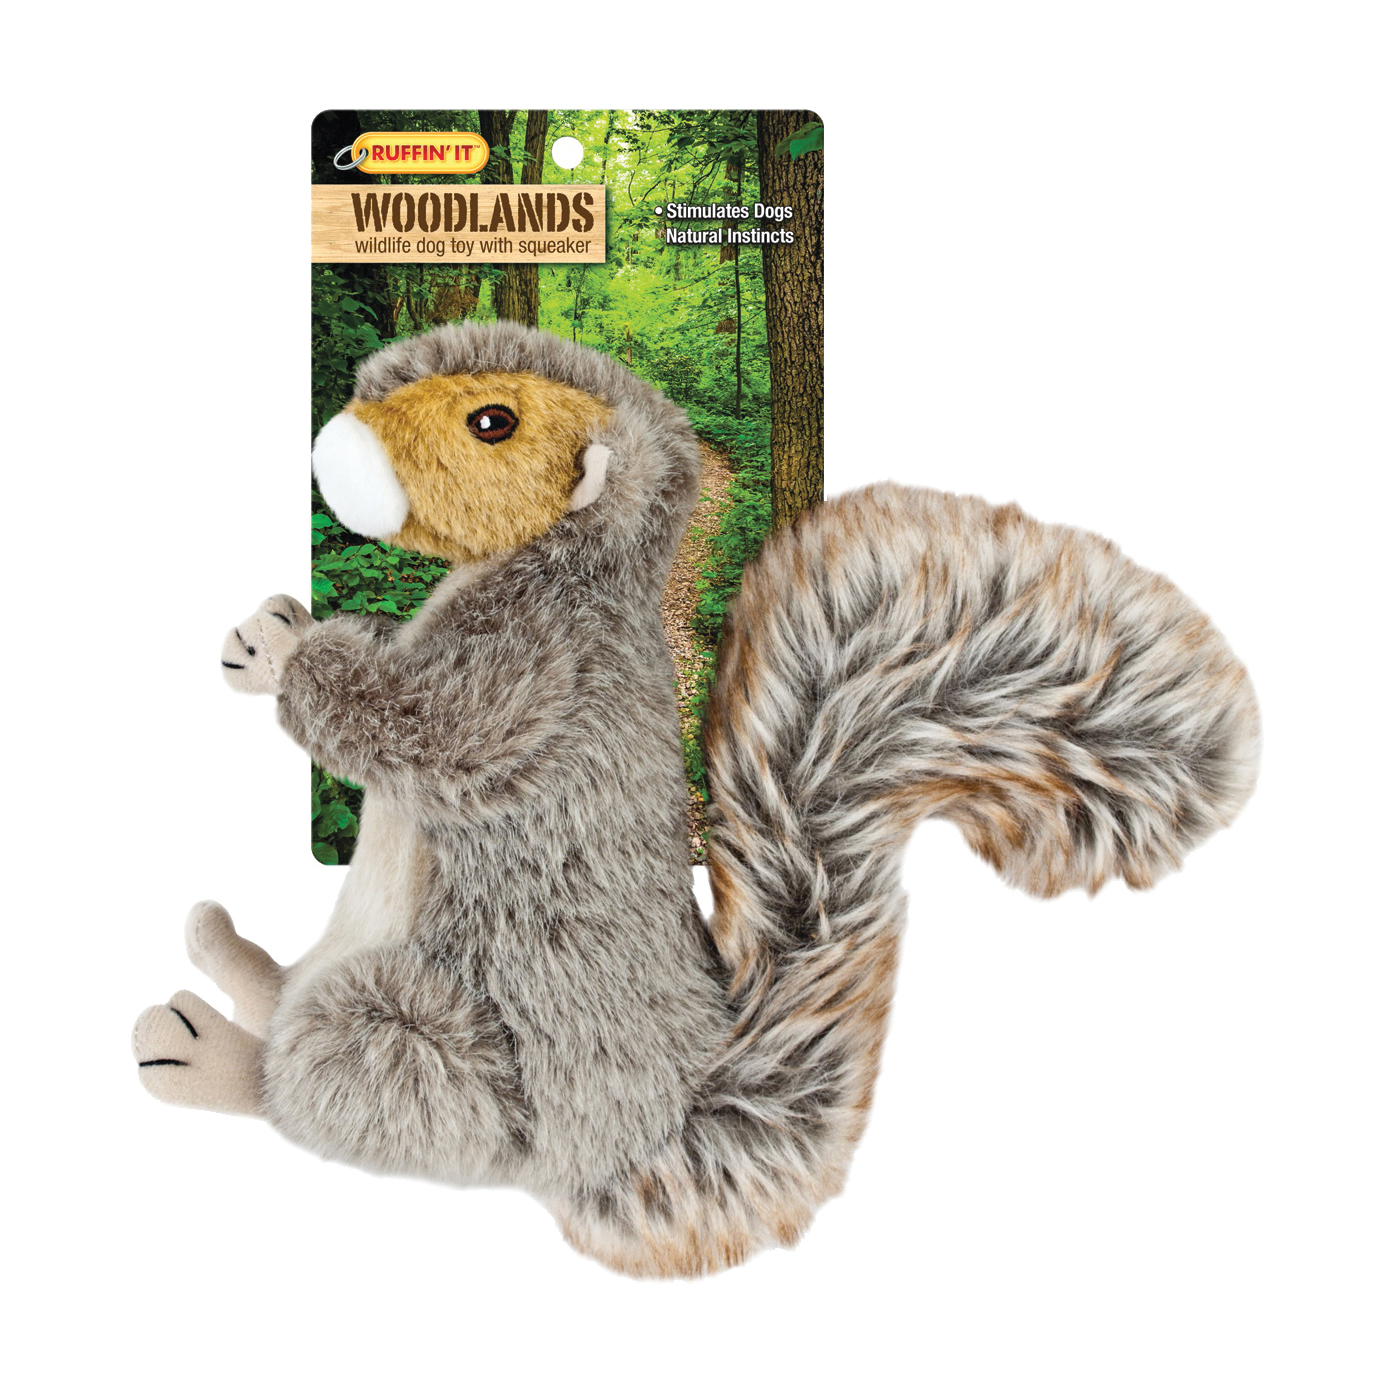 Picture of RUFFIN'IT 16272 Plush Dog Toy, L, Woodlands Toy, Squirrel